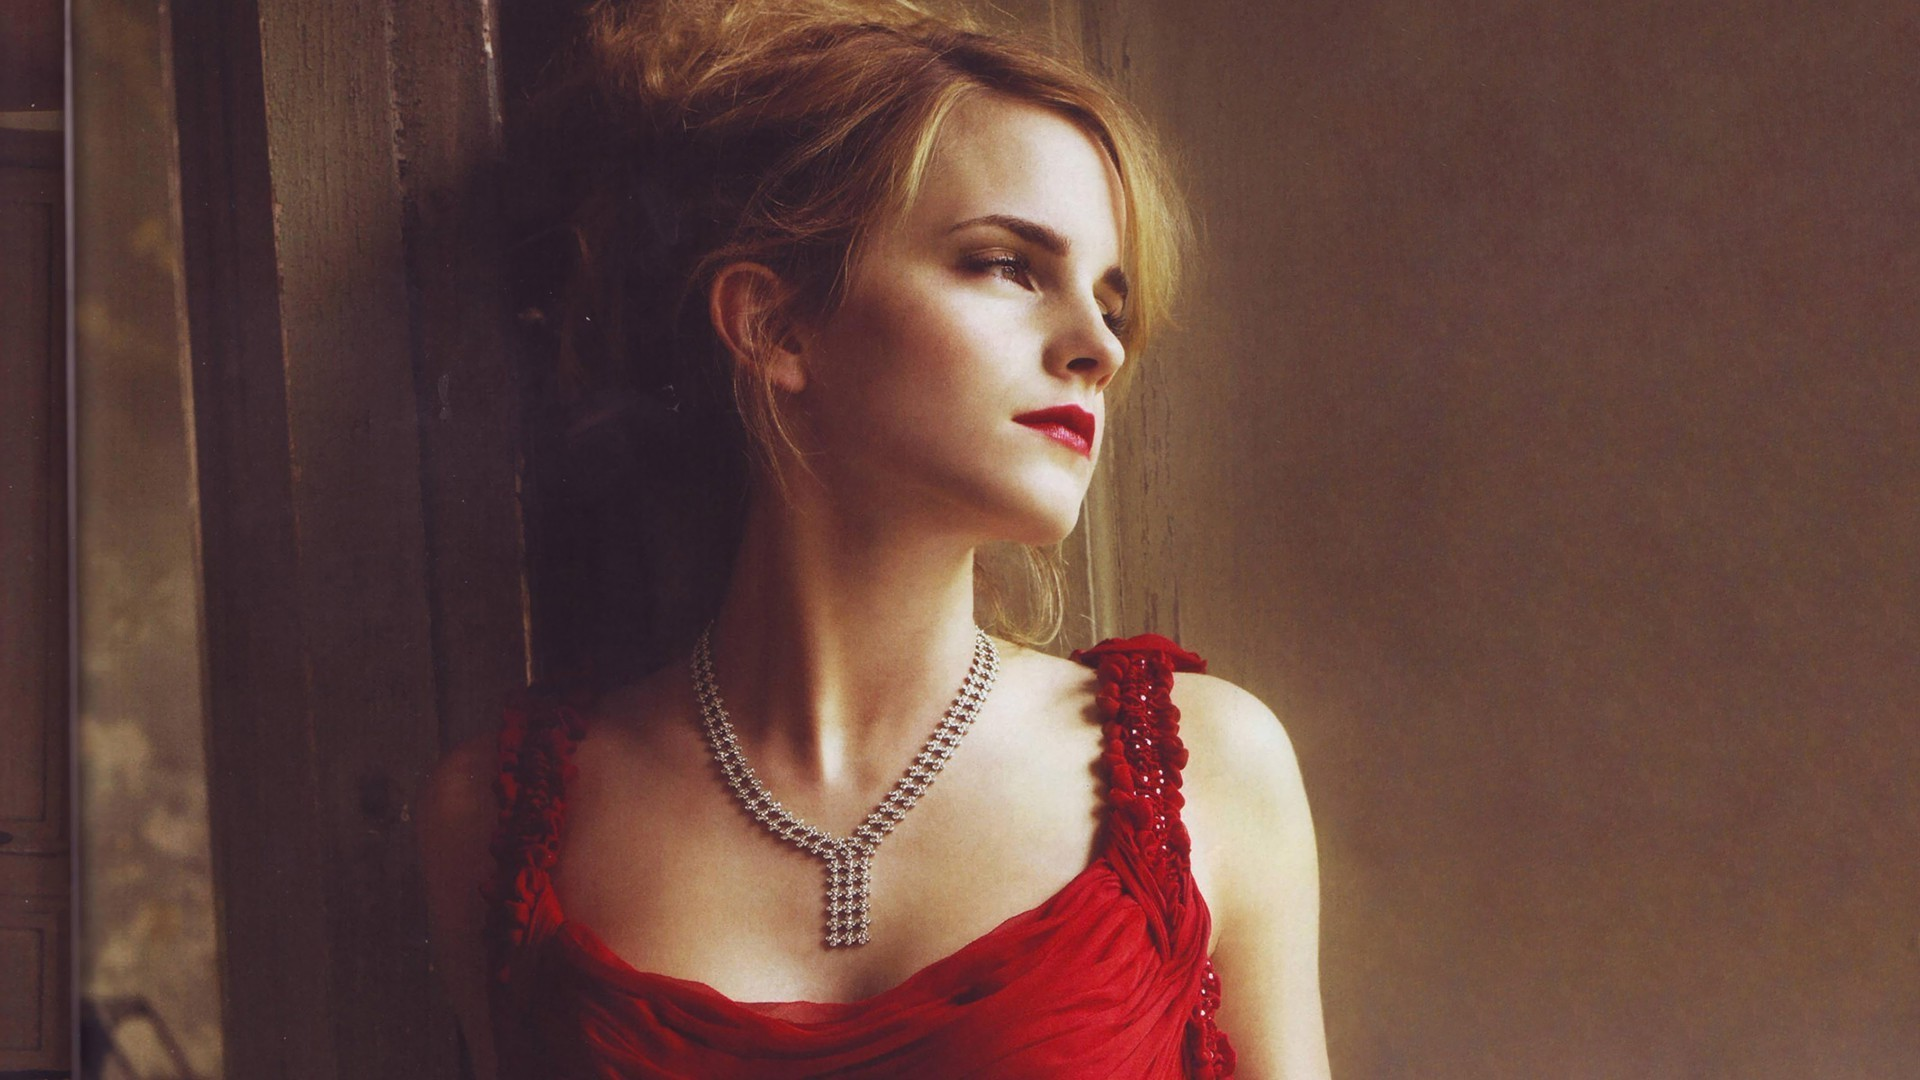 1920x1080 Emma Watson Wide Full HD 1080p Images Photos Pics Wallpapers  startwallpapers. Â«Â«